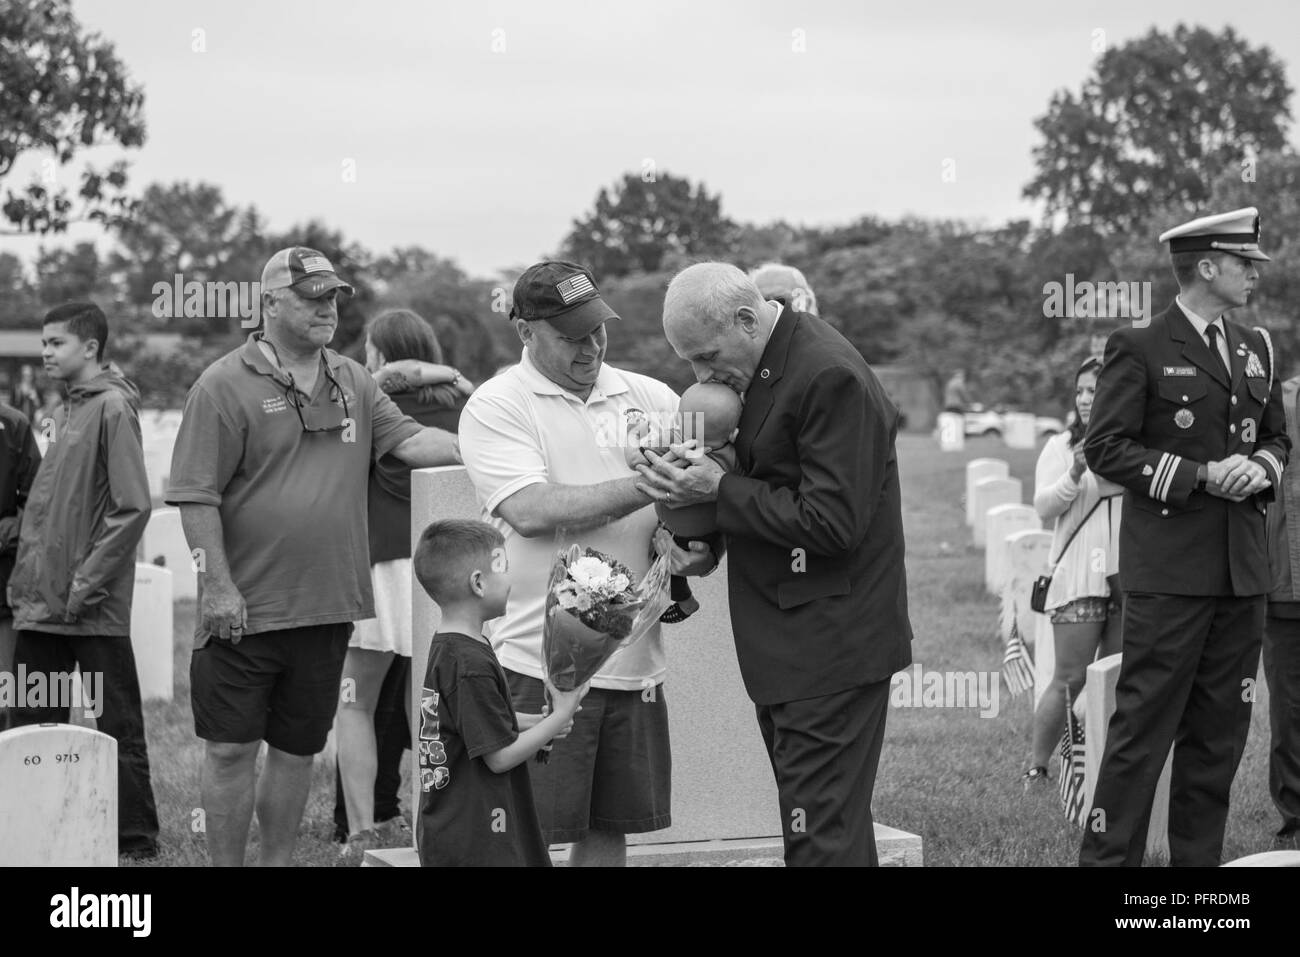 Chief of Staff John Kelly (right) kisses the head of a visitor's child in Section 60 of Arlington National Cemetery, Arlington, Virginia, May 28, 2018. Following the Memorial Day Observance at the Memorial Amphitheater, Kelly came to Section 60 with his wife, Karen Hernest Kelly, to visit the gravesite of their son, U.S. Marine Corps 1st Lt. Robert Michael Kelly. Chief of Staff Kelly also spoke with other visitors, friends, and family members visiting gravesites in Section 60. - Stock Image